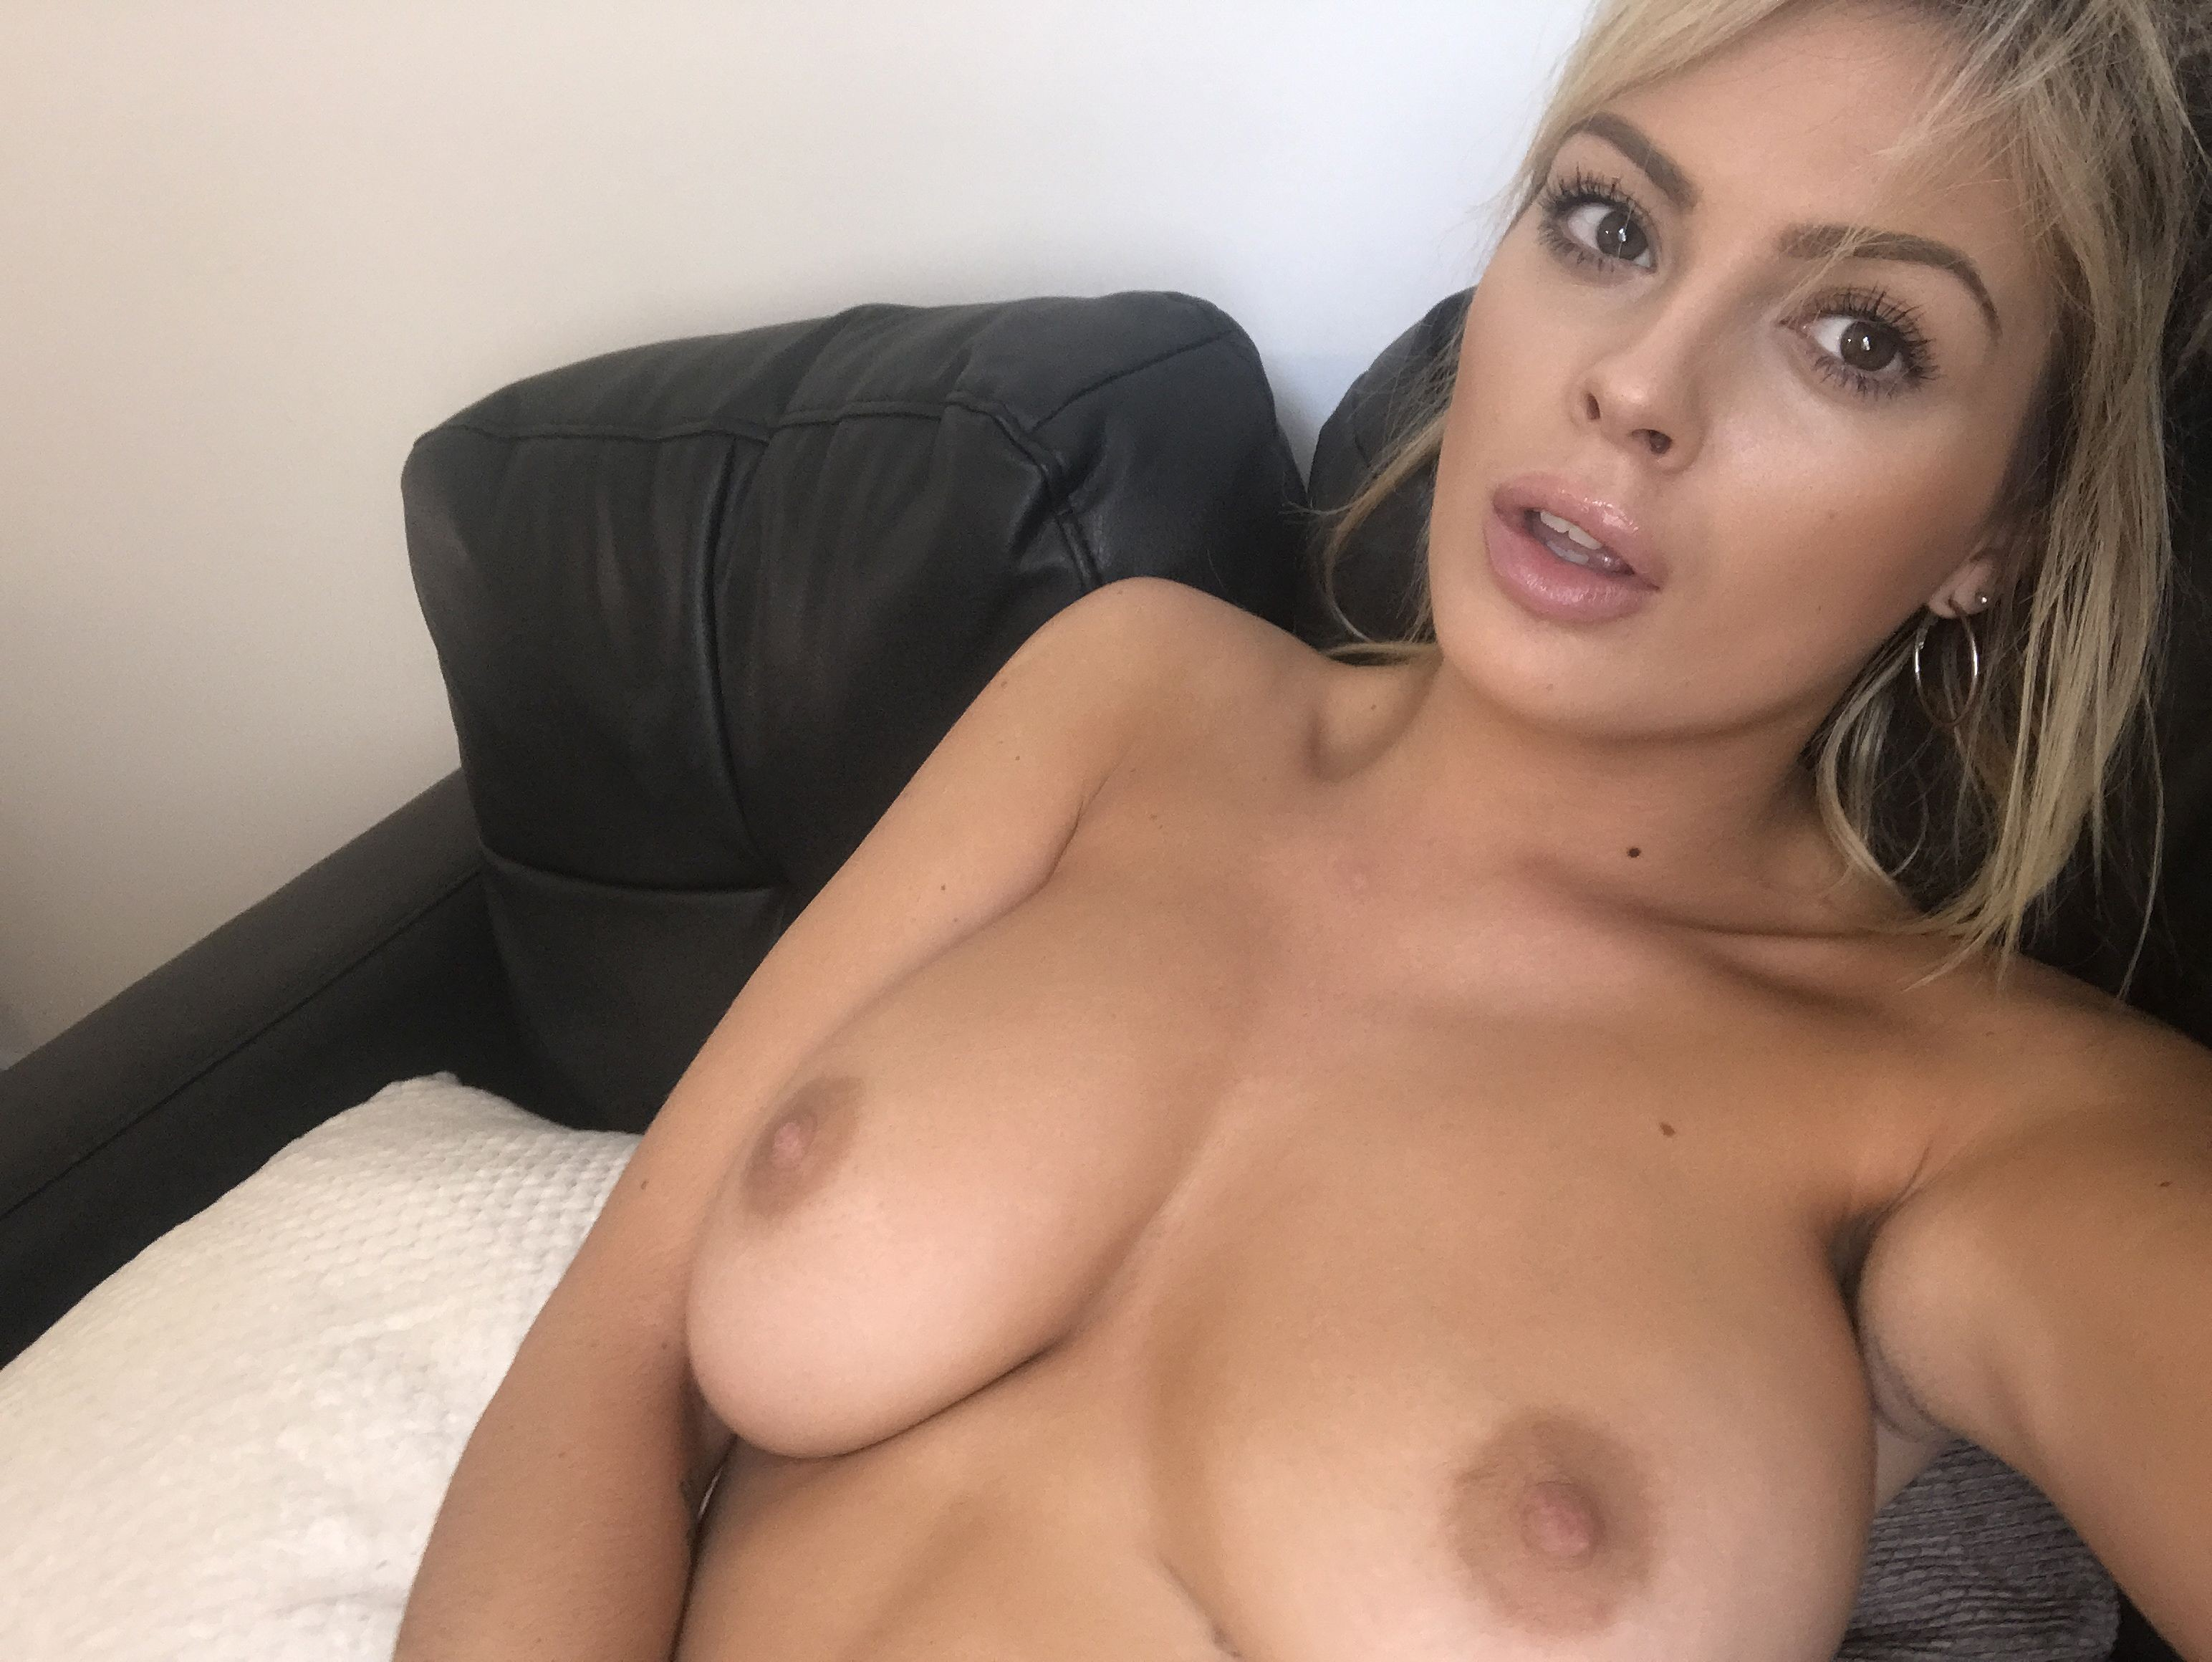 Danielle Sellers Leaked Nude Selfies, Boobs and Ass